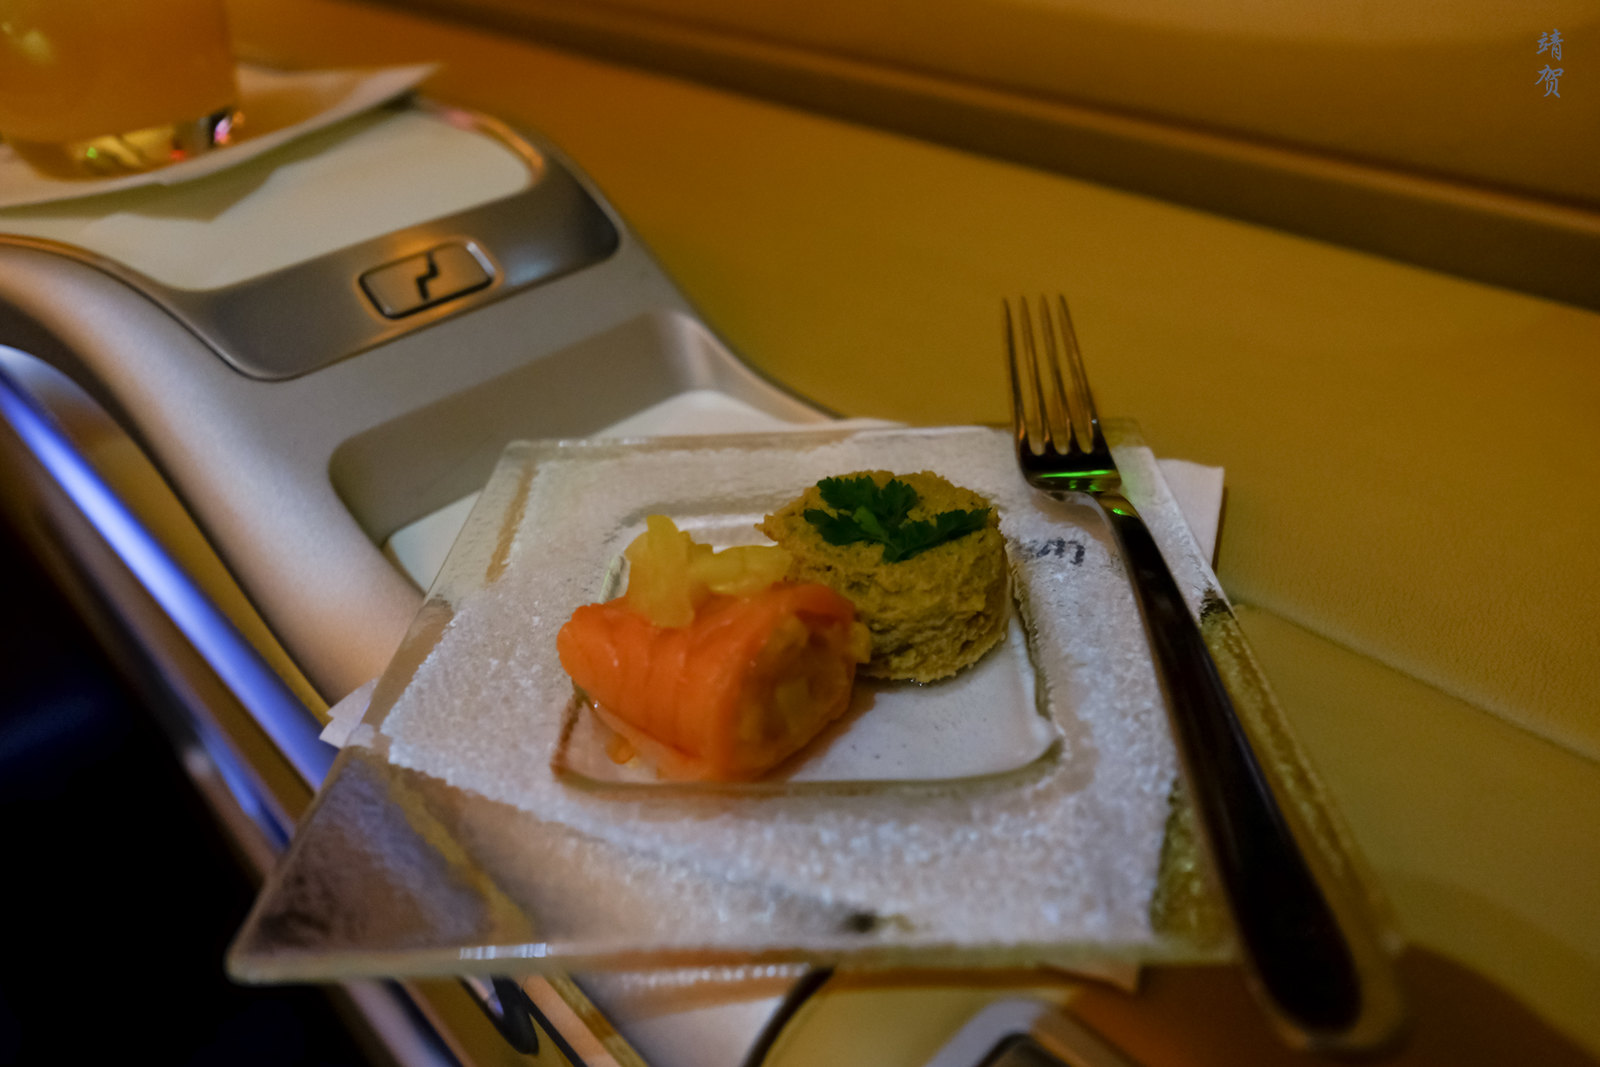 Amuse bouche after take-off